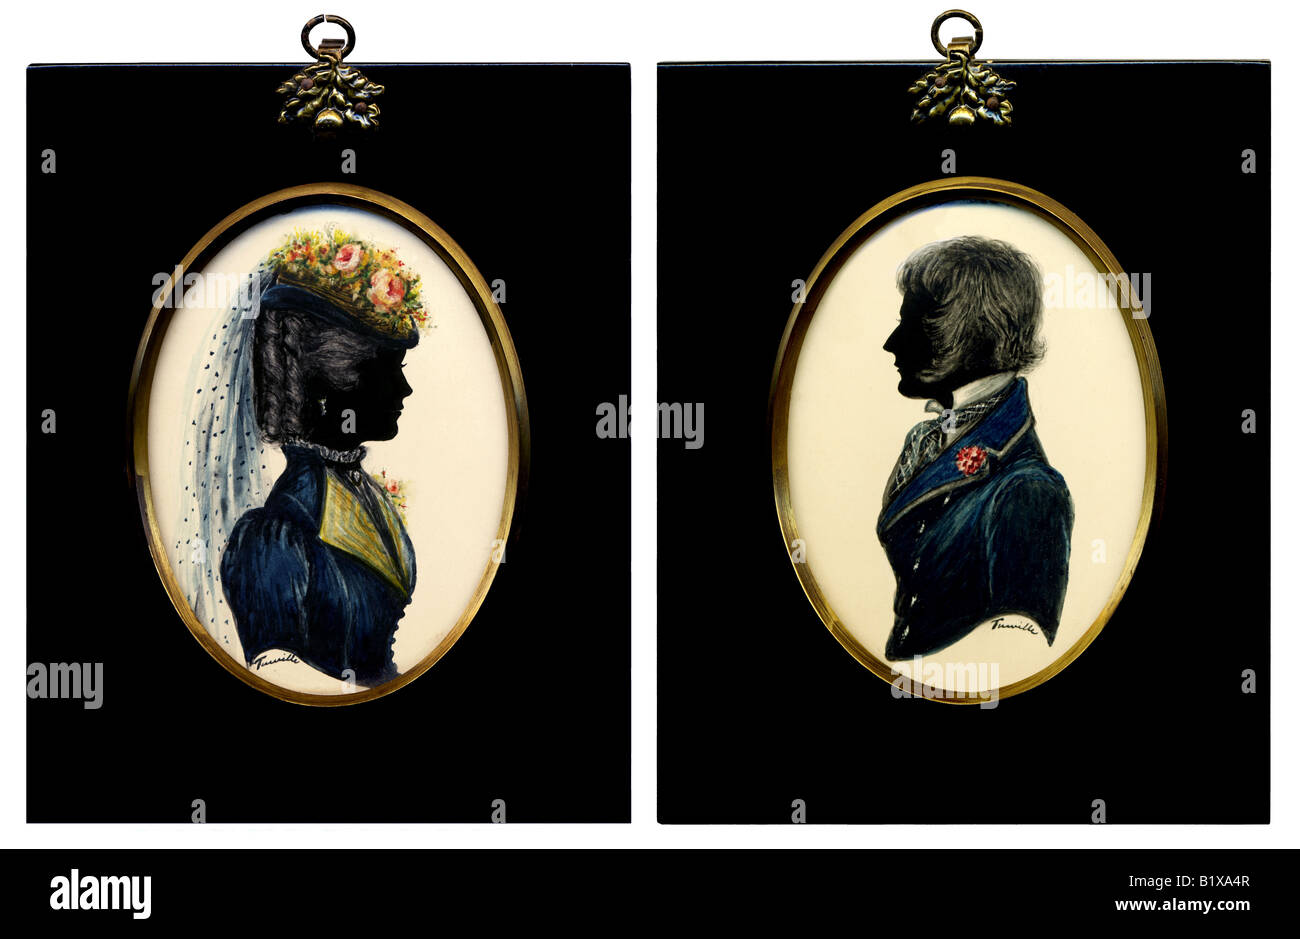 A pair of Georgian style painted miniature silhouettes behind convex glass from the 1970s  FOR EDITORIAL USE ONLY - Stock Image